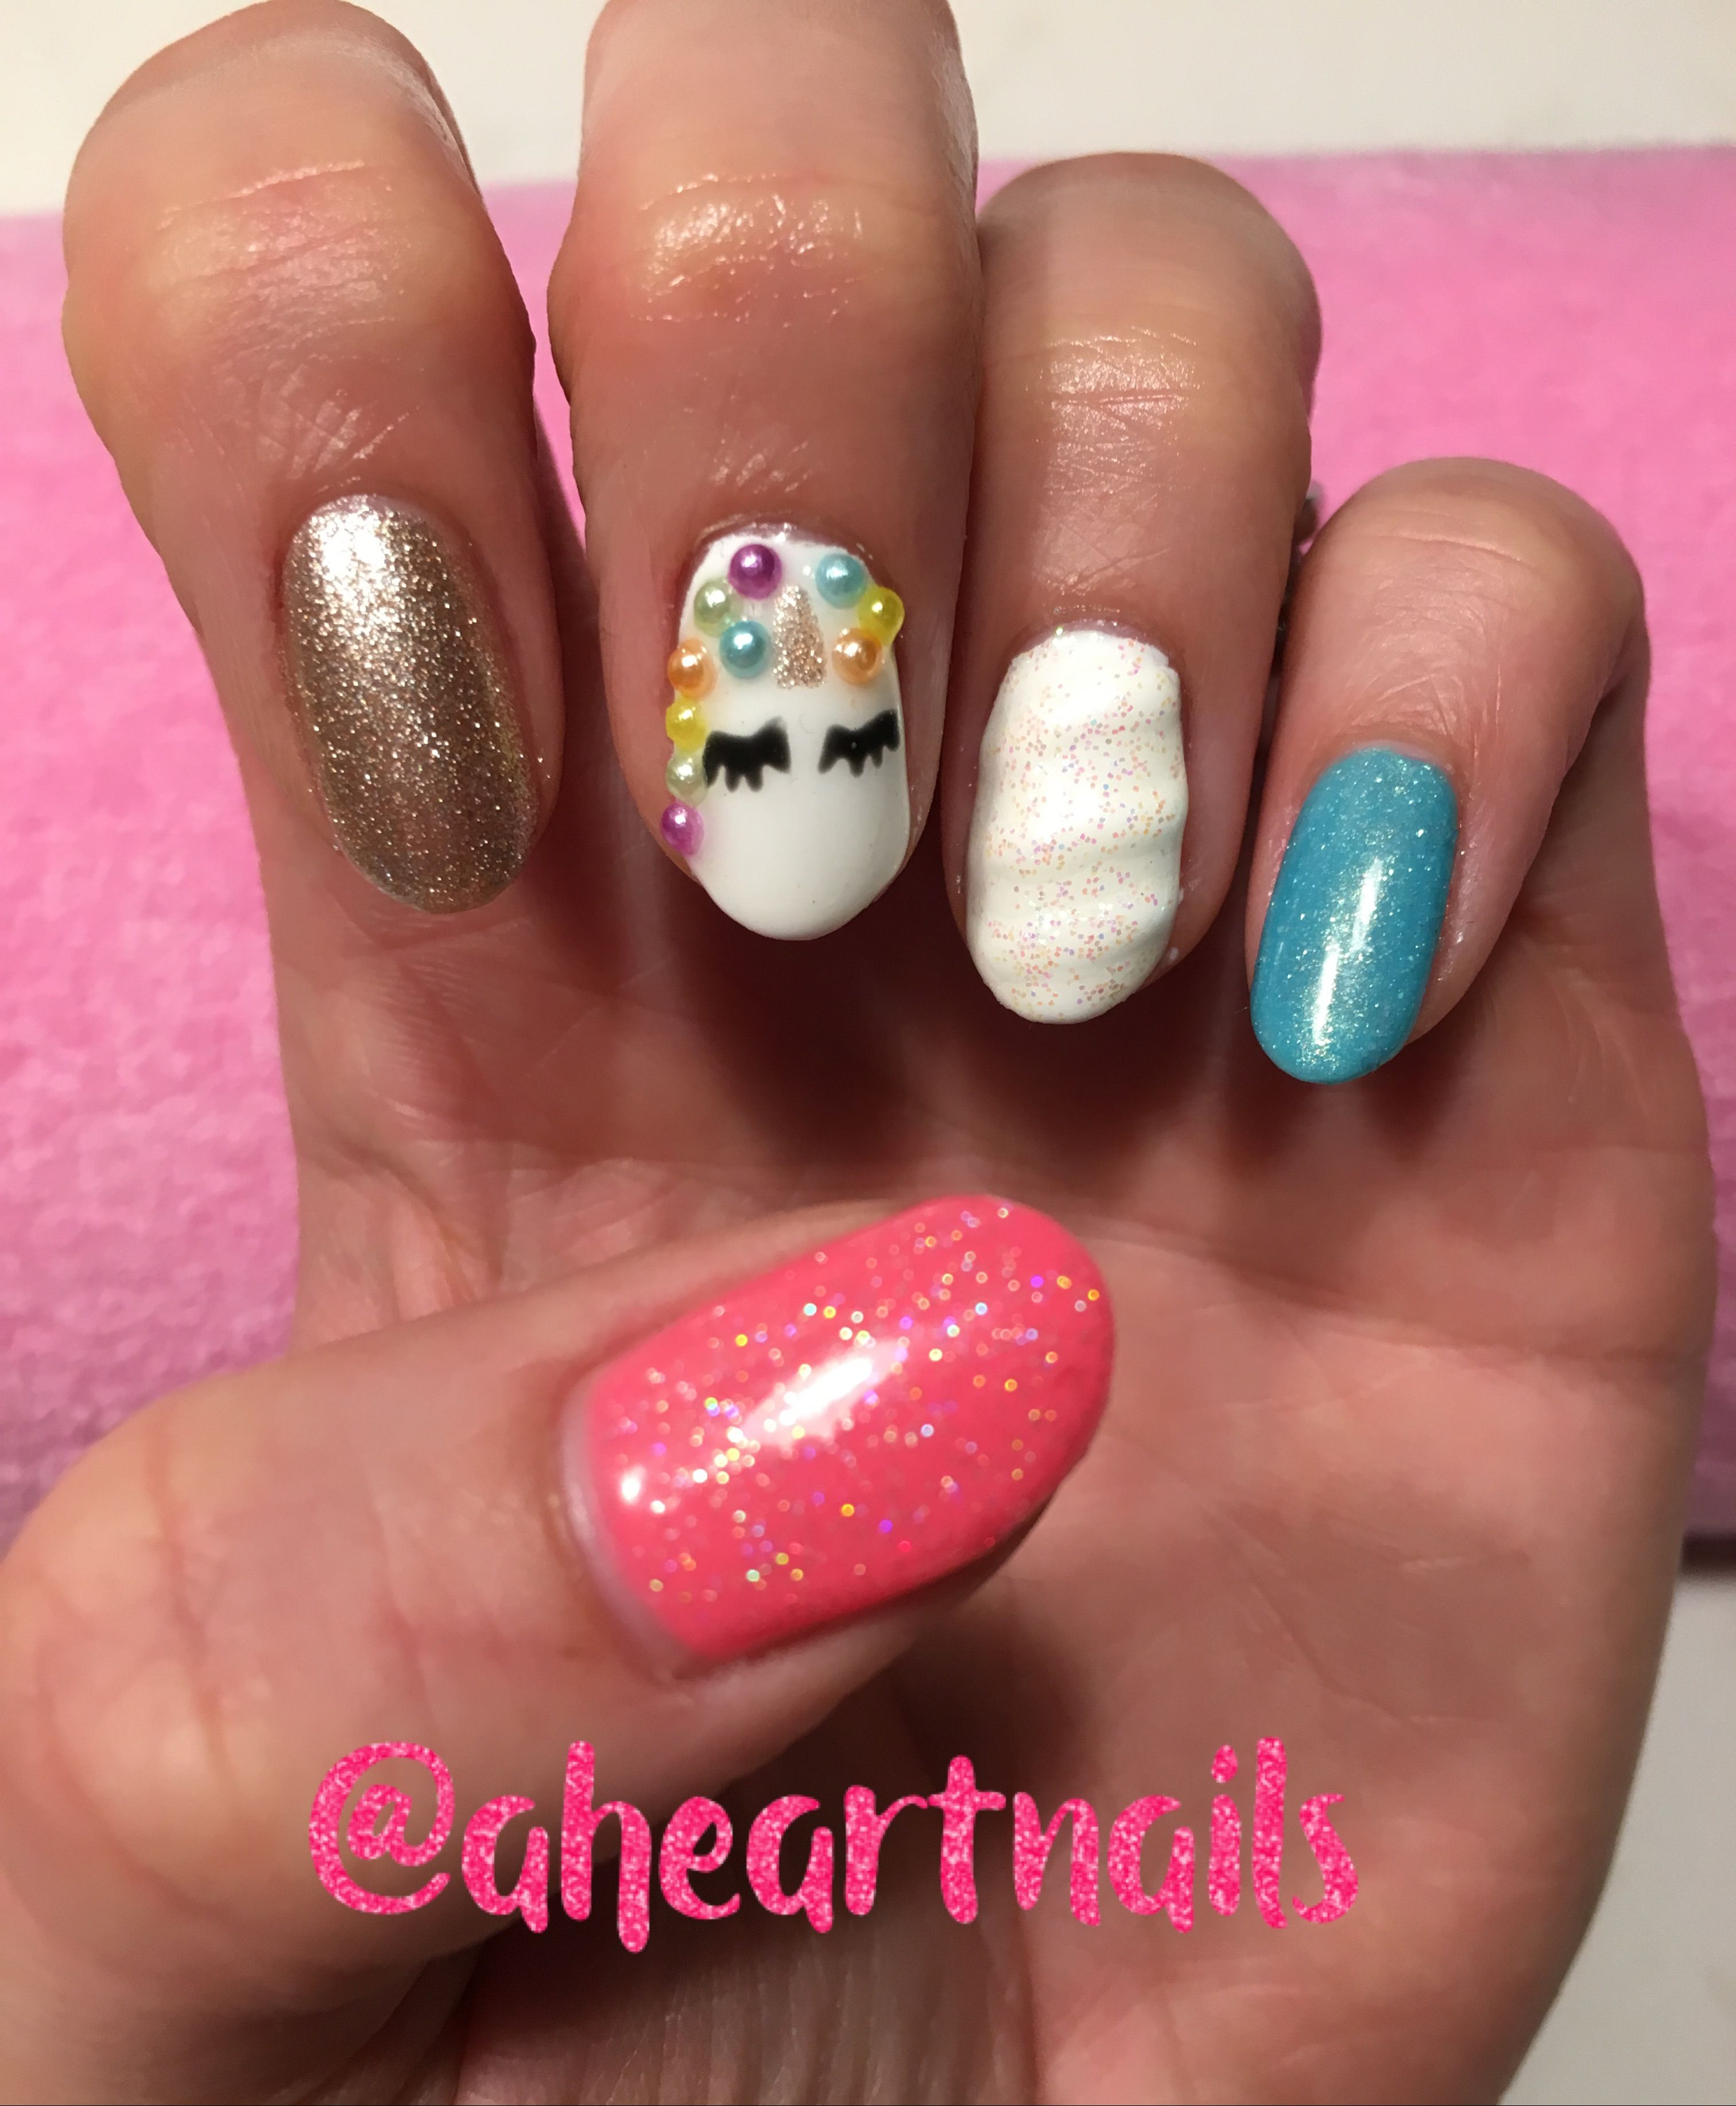 26 Impossible Japanese Nail Art Designs: Unicorn Nails With 3D Unicorn Horn Using Gelish By